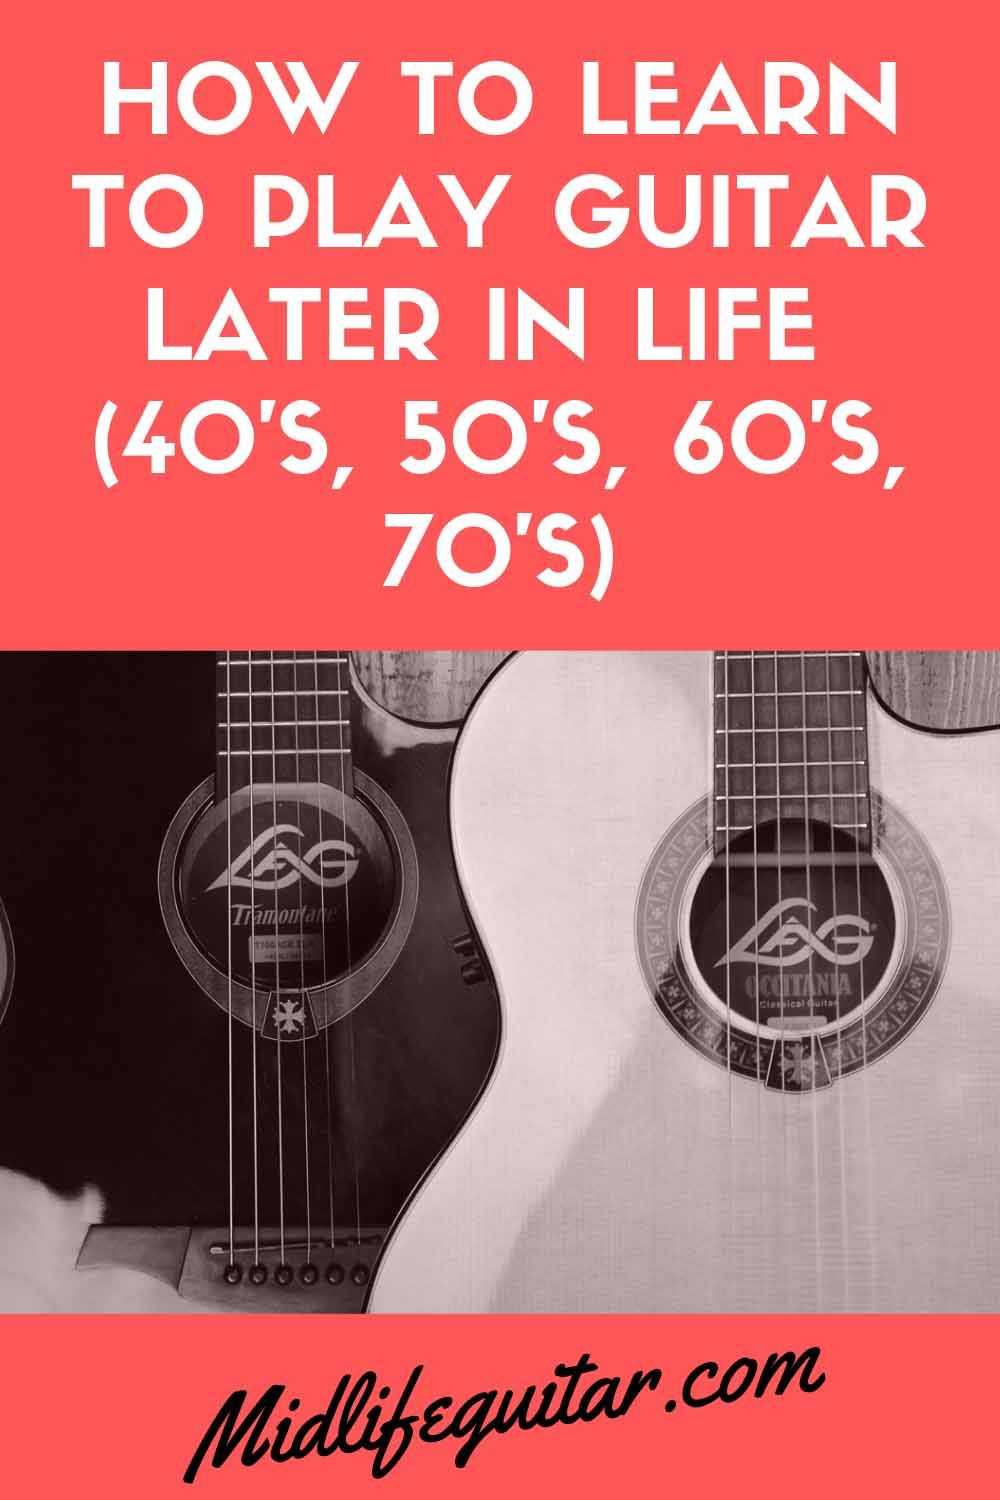 How to learn to play guitar later in life 40s 50s 60